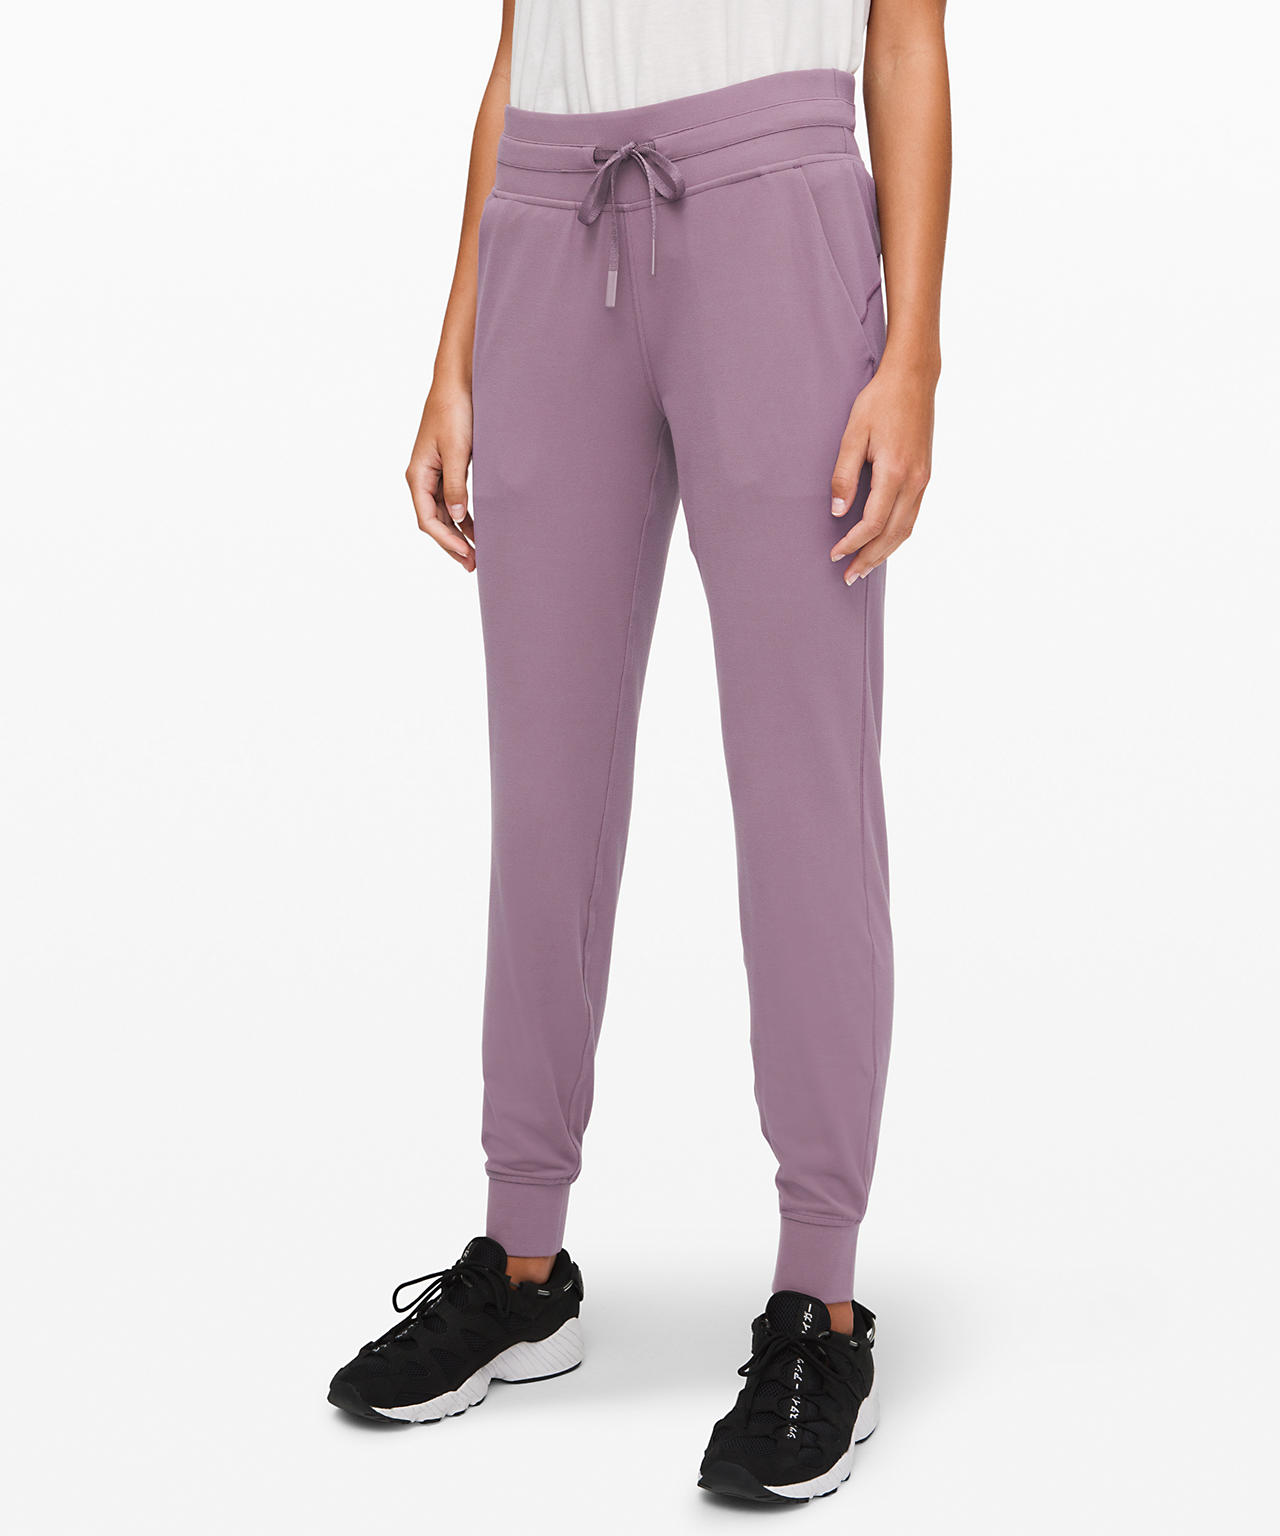 Ready To Rulu Pant - Frosted Mulberry, Lululemon Upload